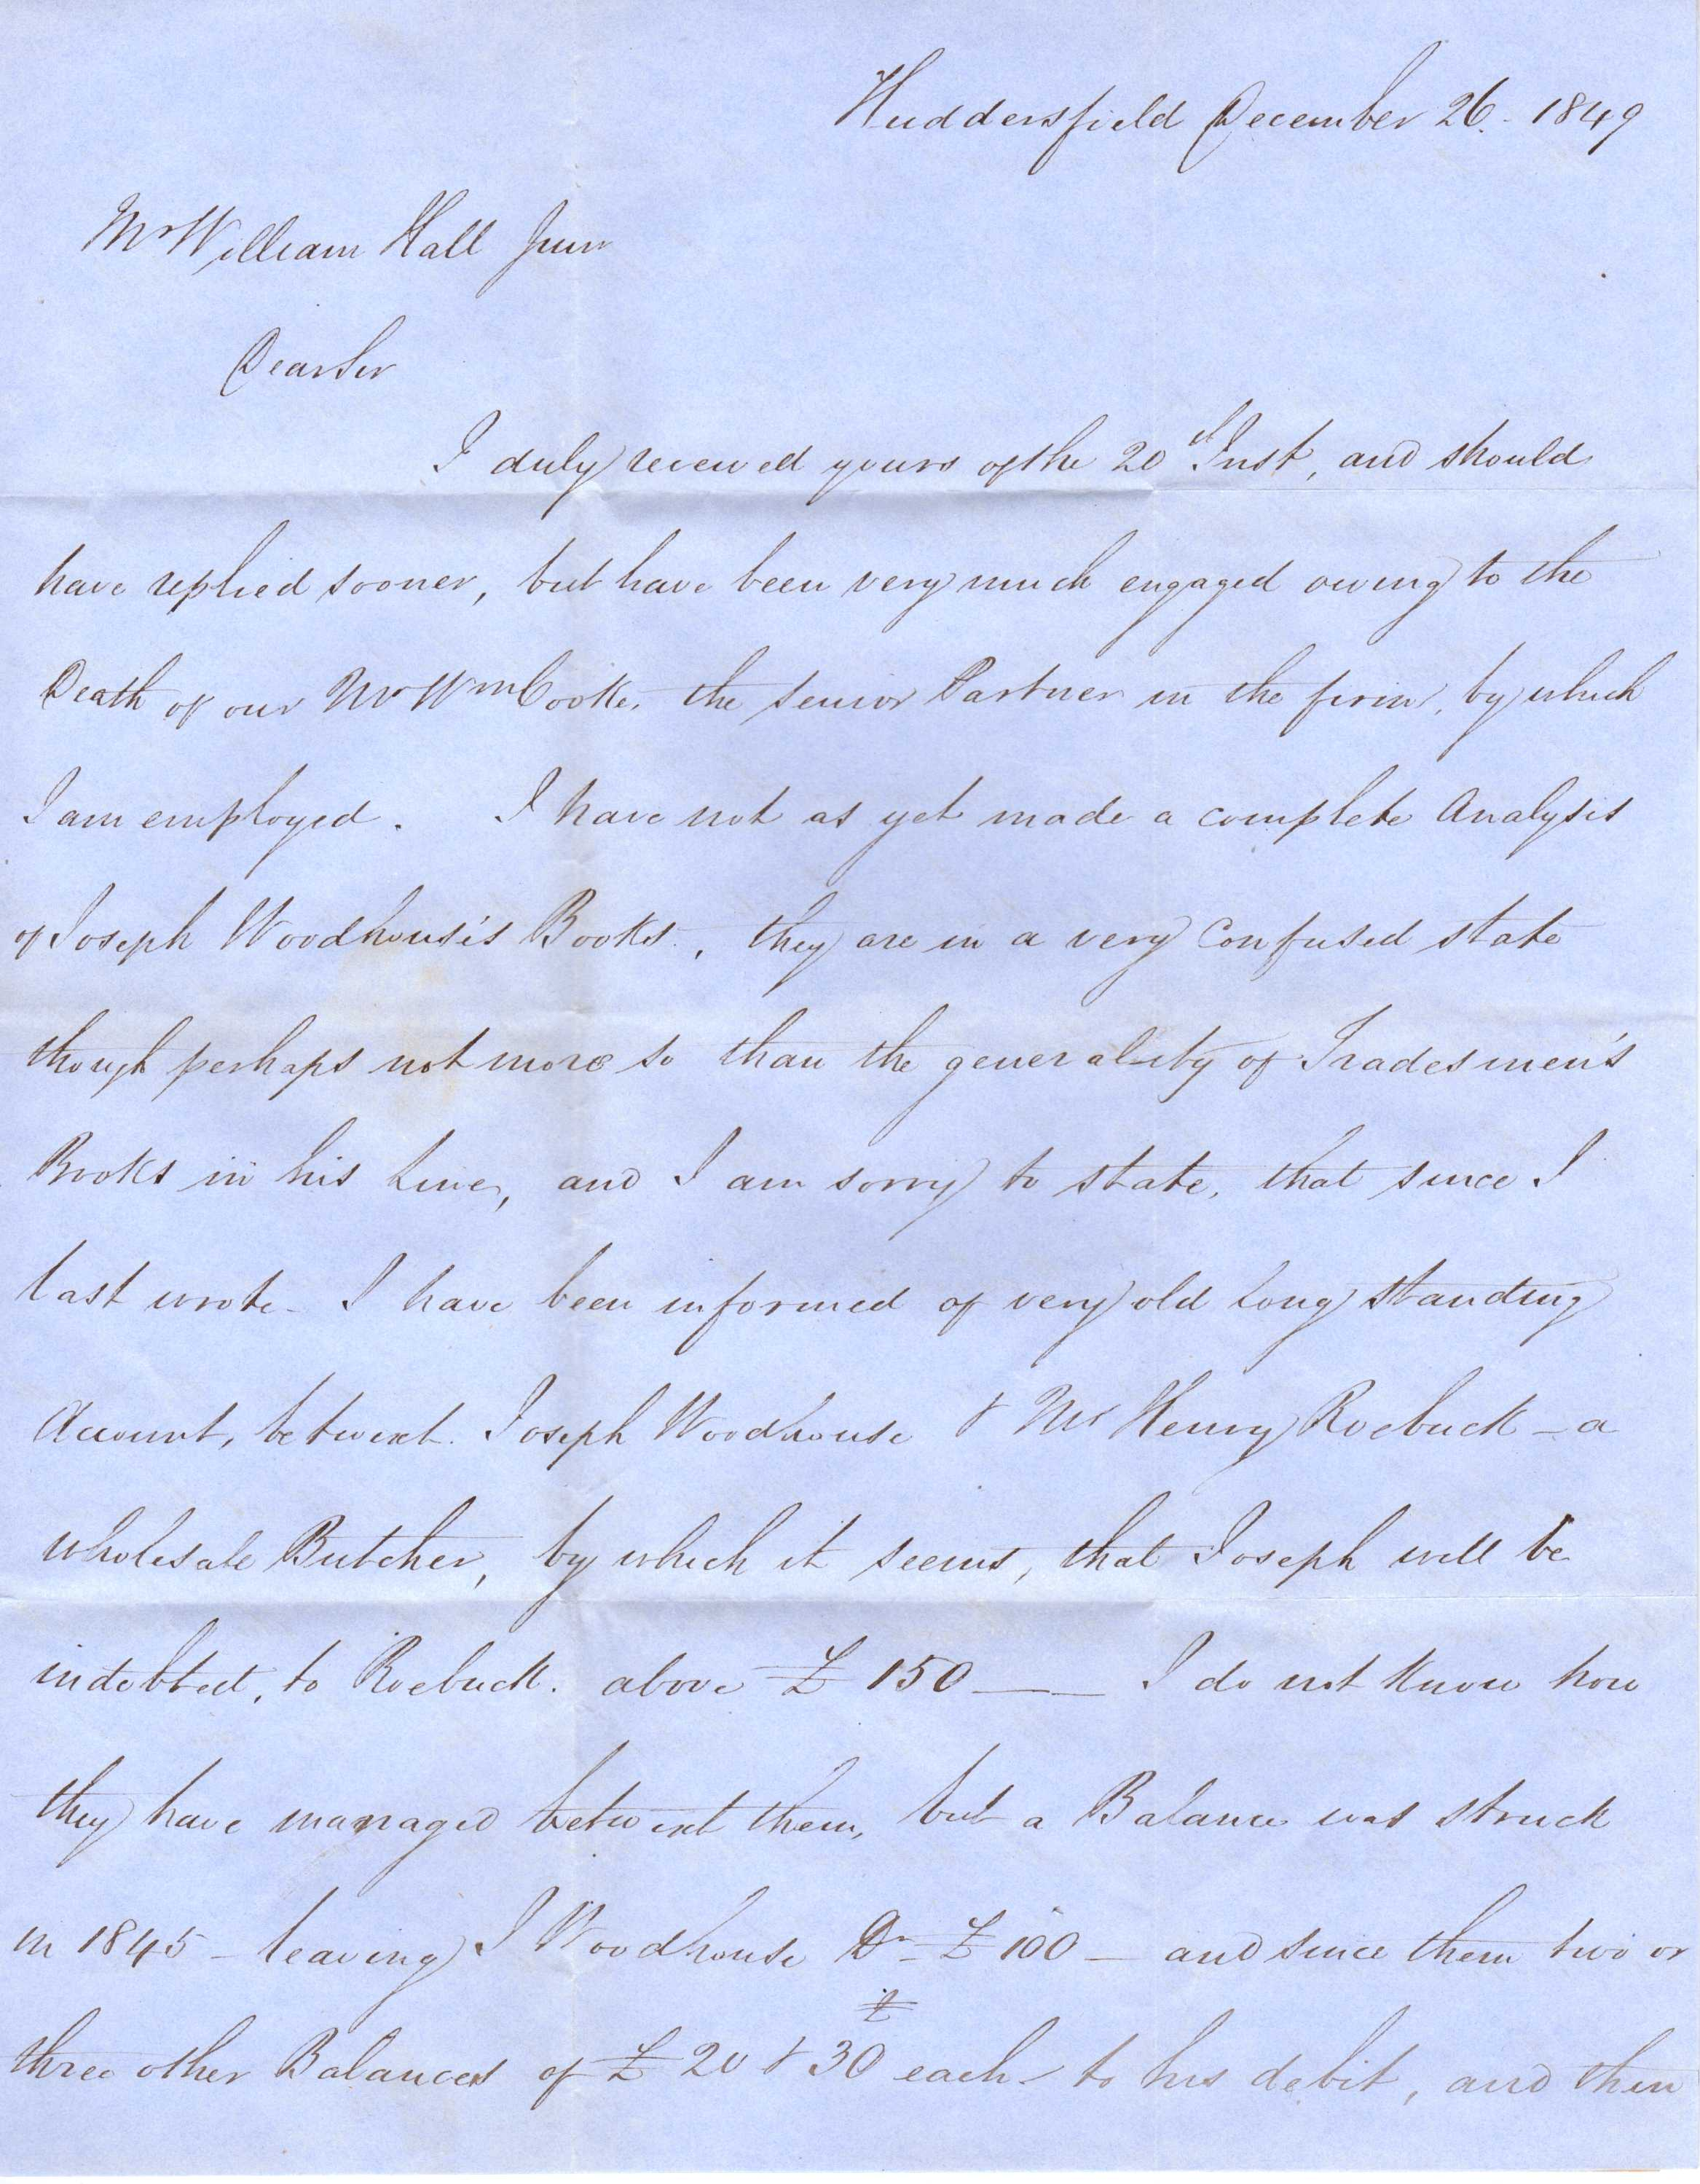 Letters from john stead better be settled now waiting your opinion on the various points i am dear sir john stead direct mr john stead messrs john cooke co huddersfield spiritdancerdesigns Gallery